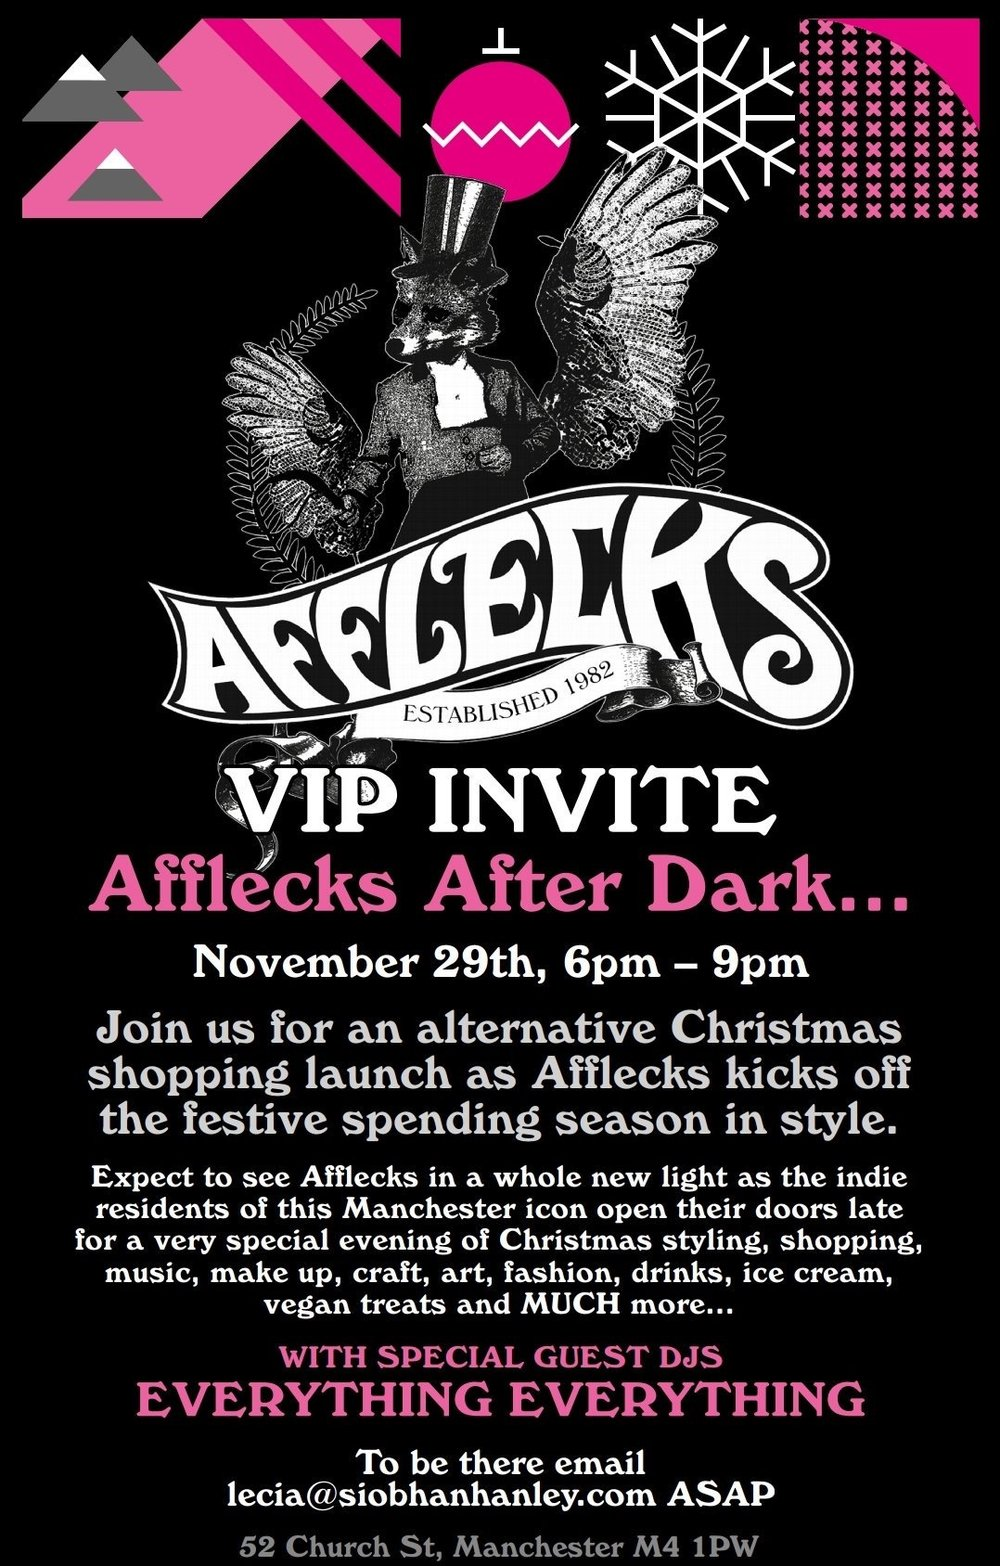 Thurs 29 November 2018 - At this time of year Manchester is awash with Christmas markets and events, so why not check out Afflecks After Dark for something a little different.An independent shopping mecca, Afflecks is not only a Manchester institution but a long standing champion of small businesses and retail for the city.For those that want to live their best 5-9 (see what we did there) then make sure you RSVP without delay today.email lecia@siobhanhanley.com